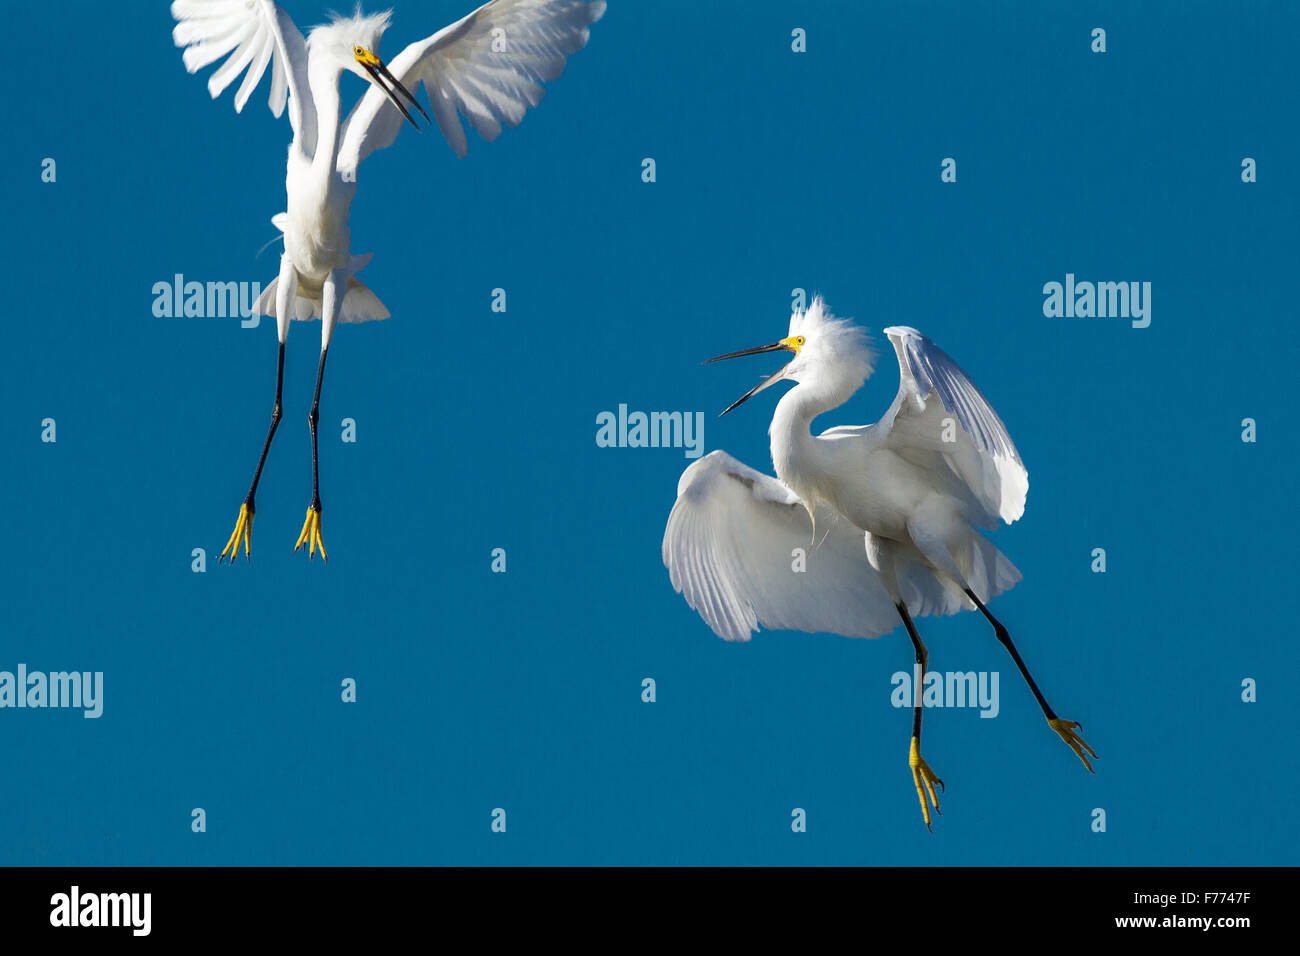 Snowy egrets fighting for territory - Stock Image